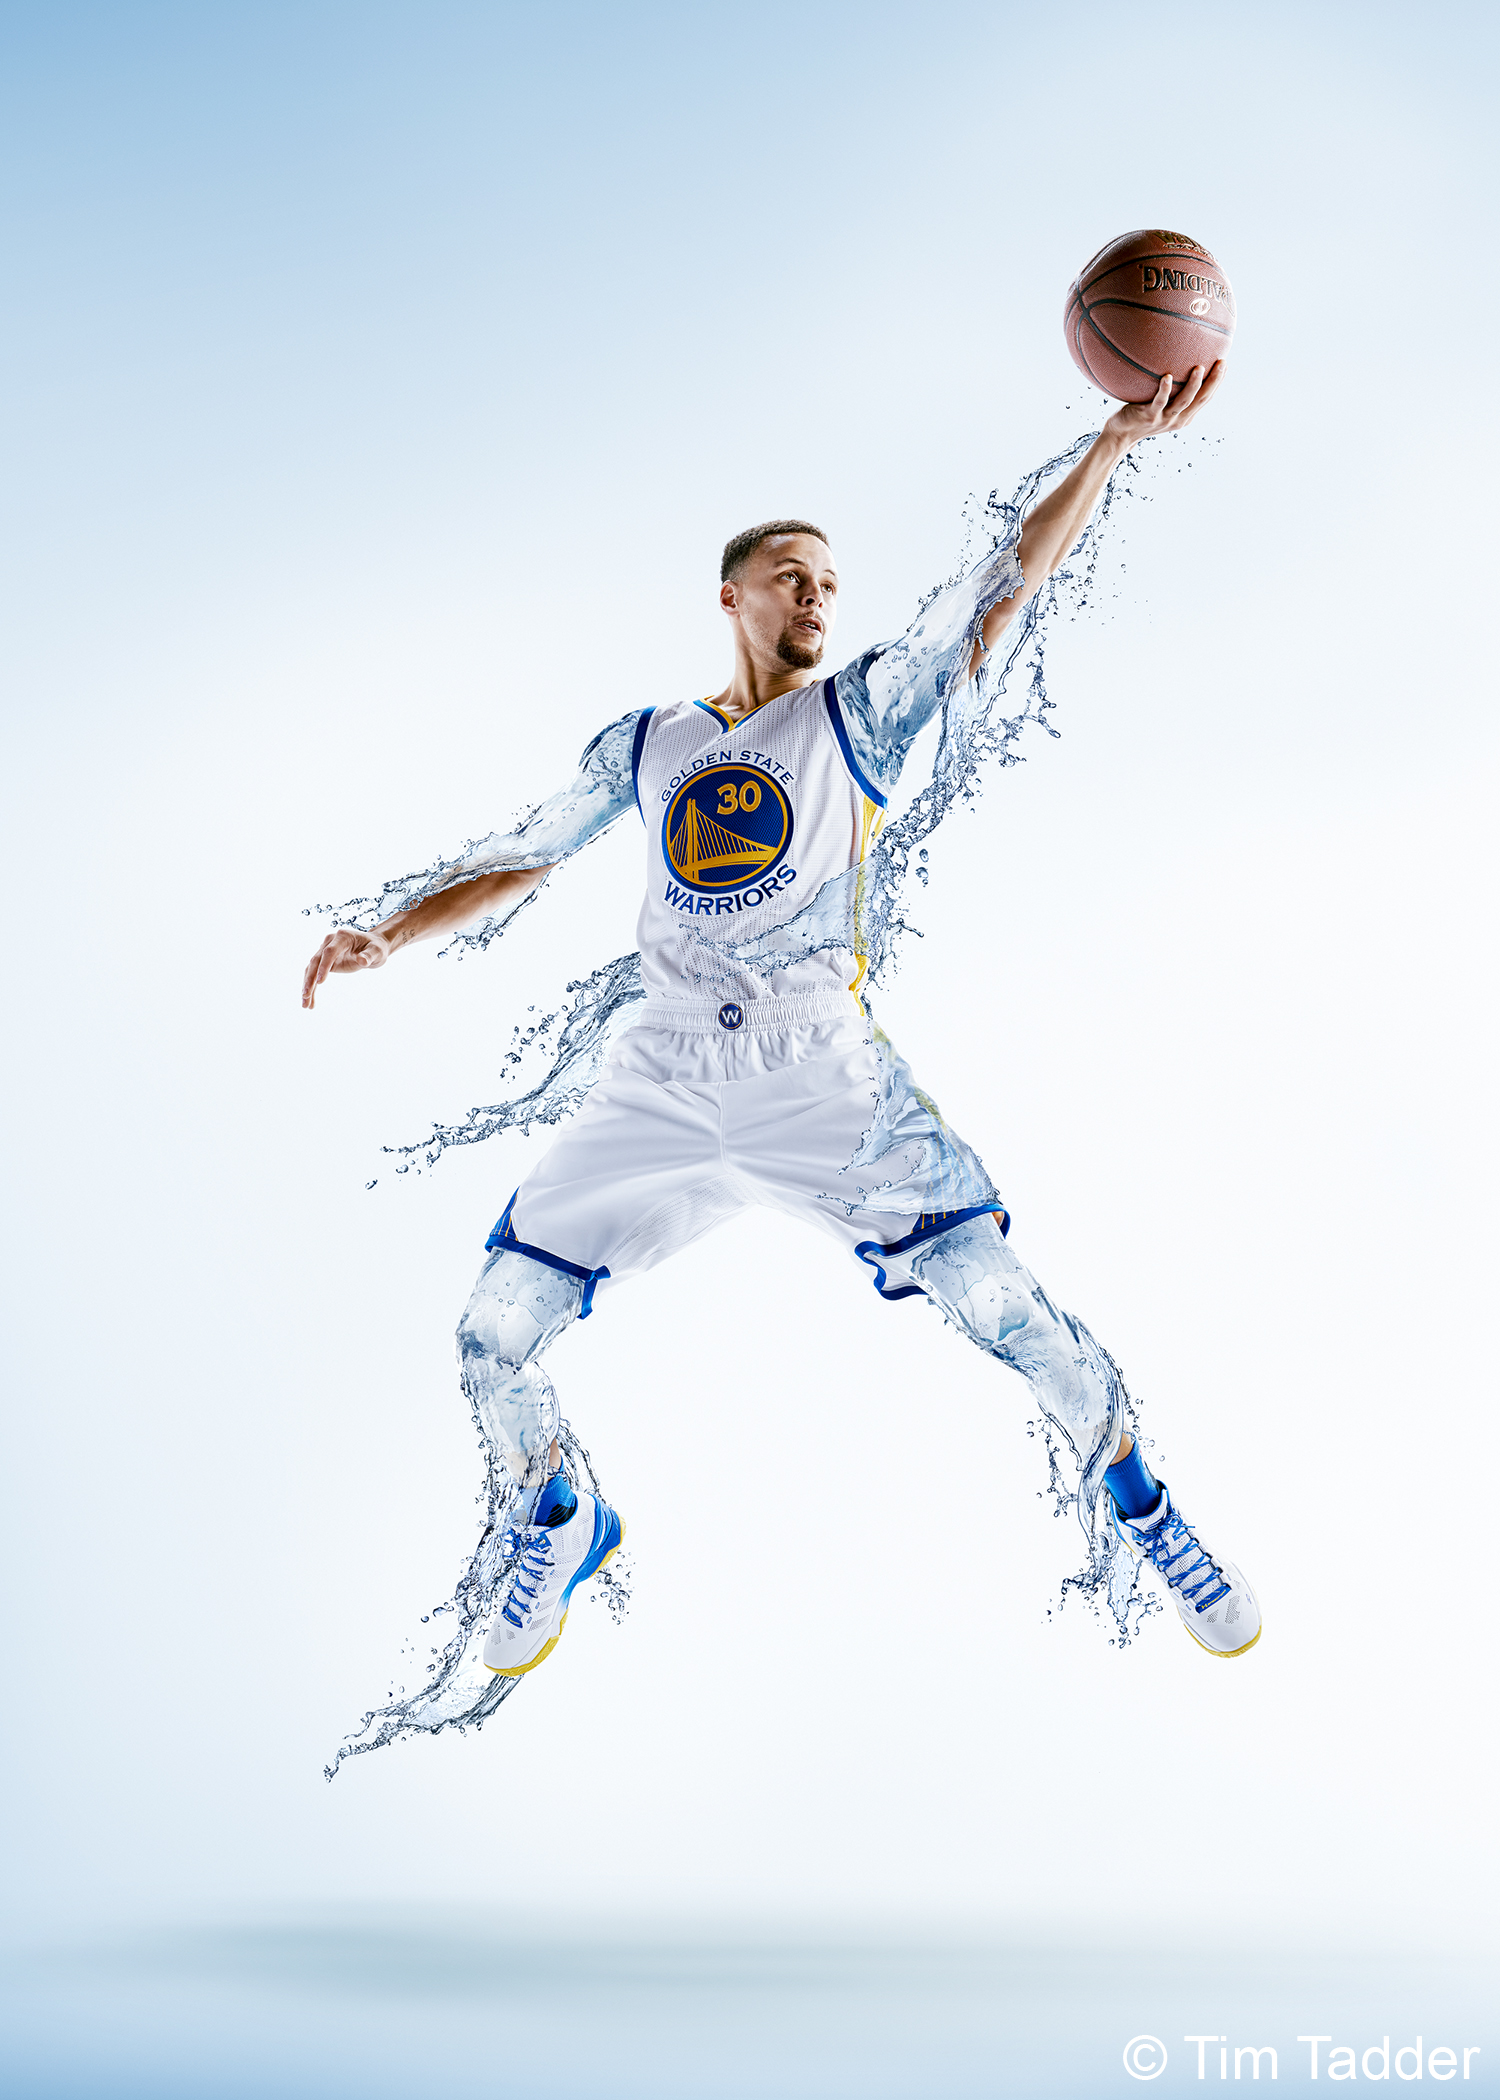 Tim Tadder - Steph Curry Brita 2